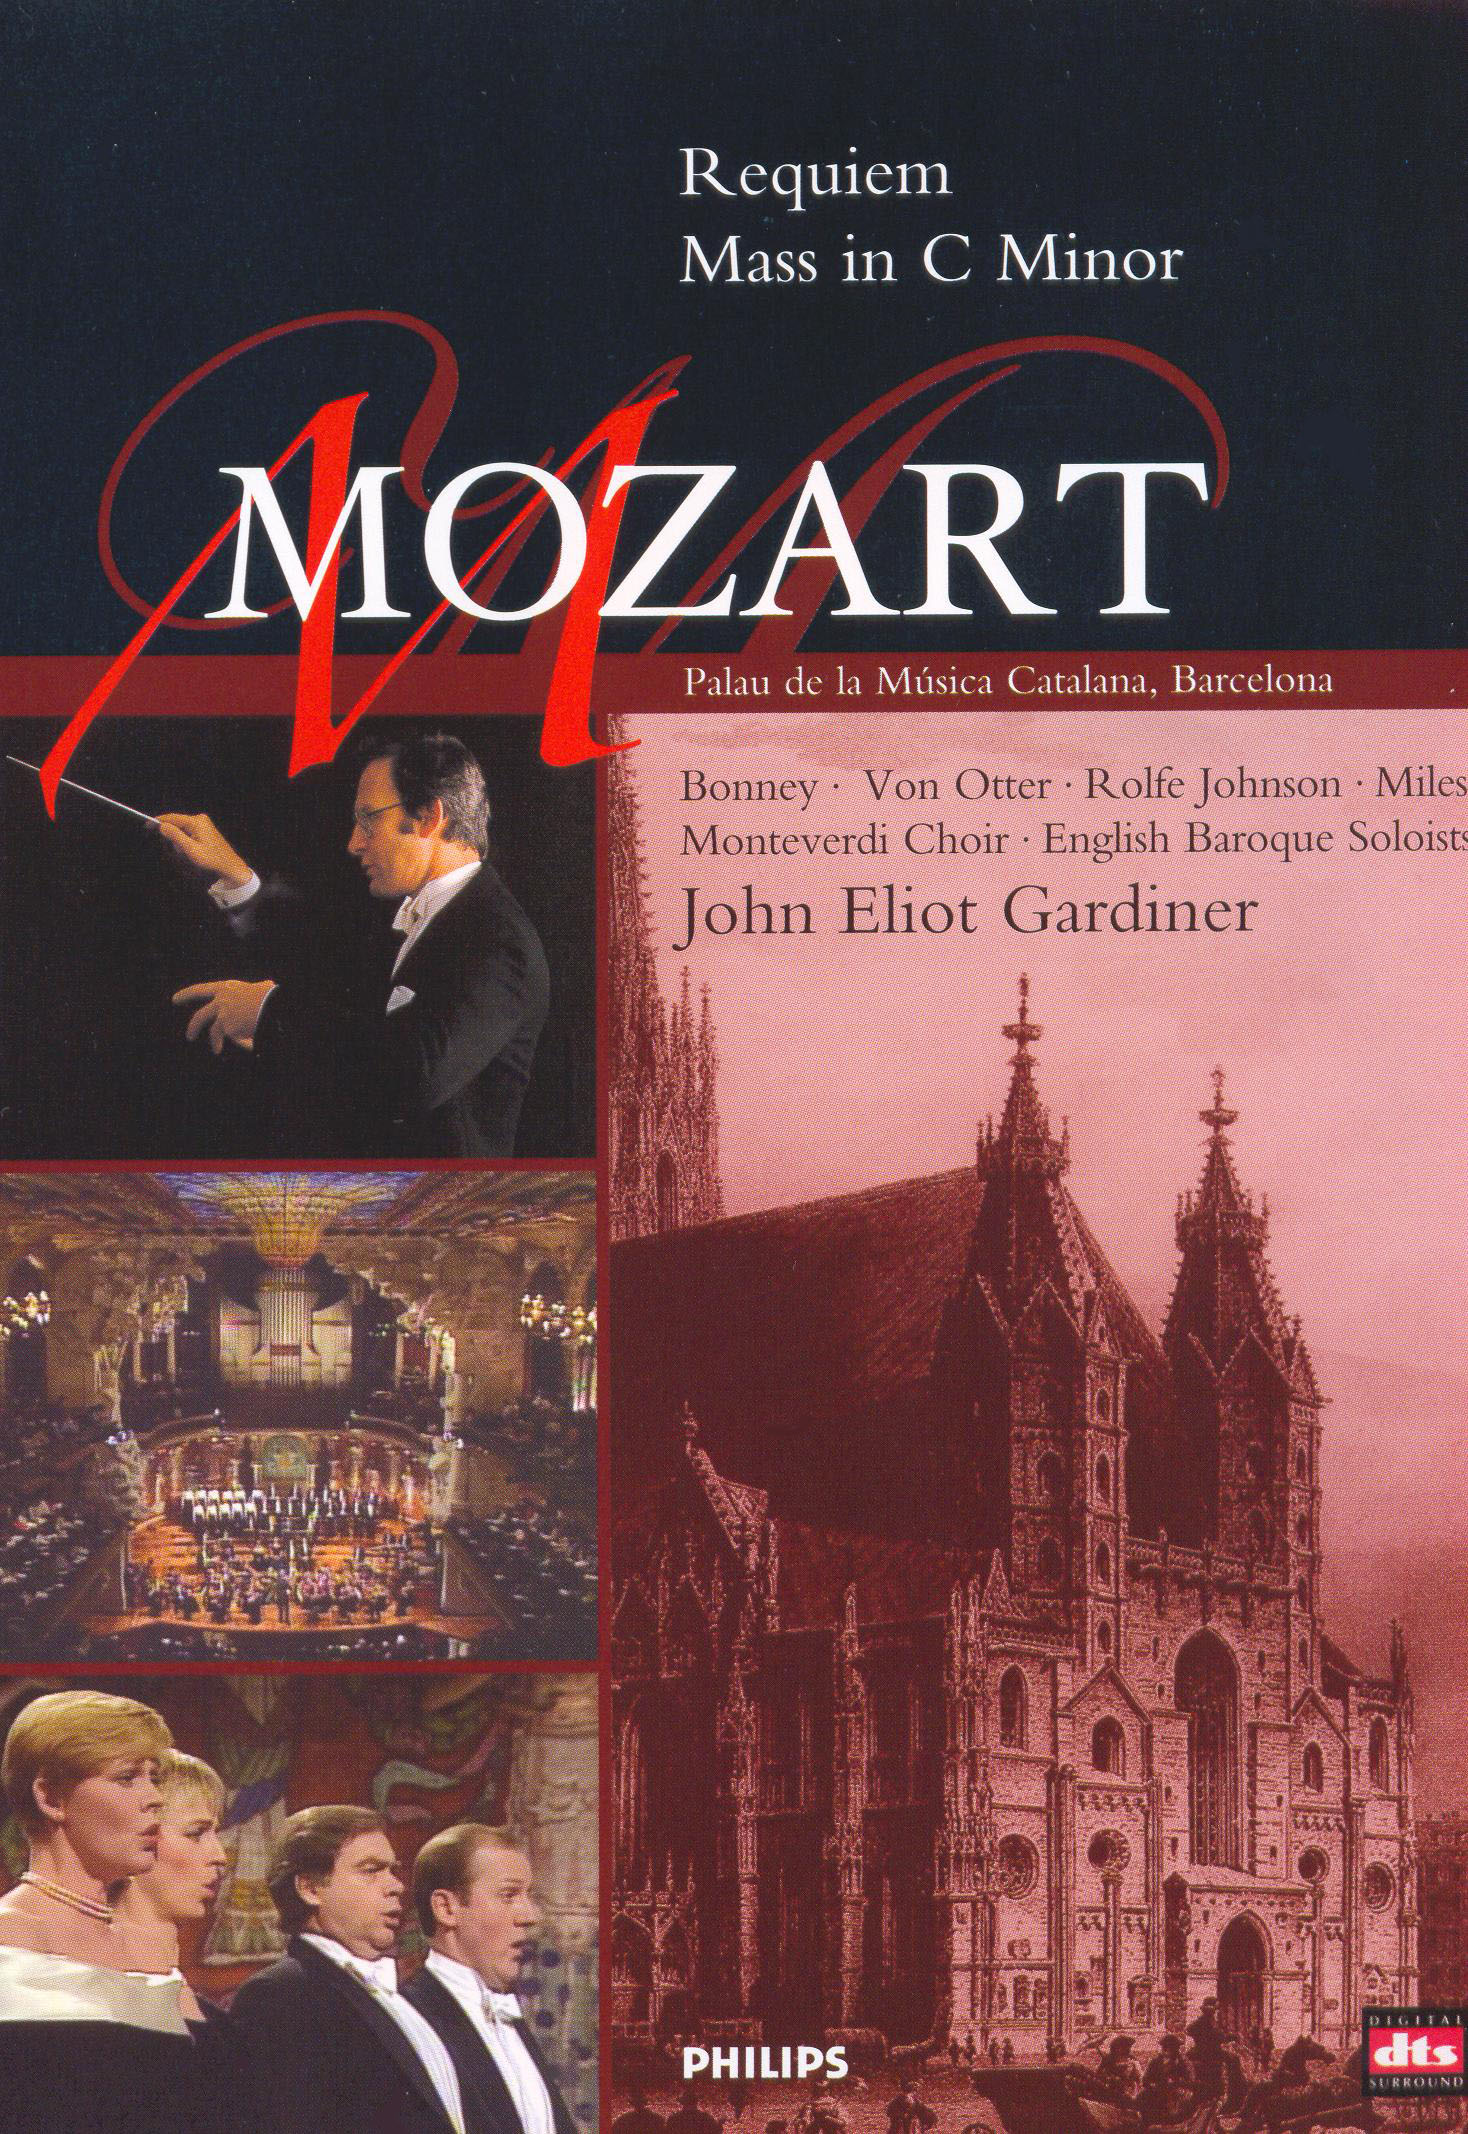 Mozart: Requiem - Mass in C Minor